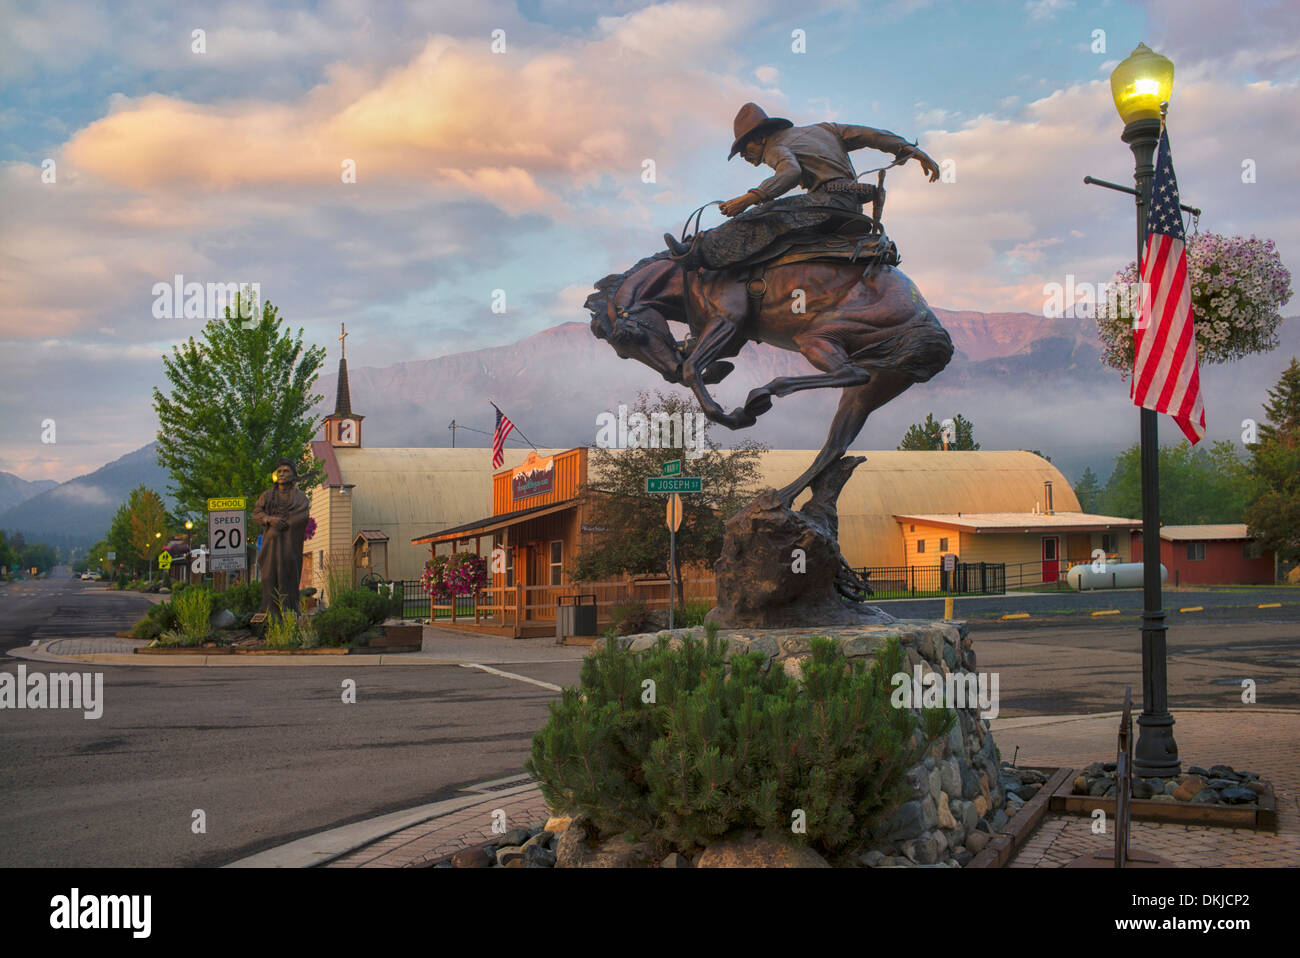 Horse rider sculpture and sunrise. Joseph, Oregon - Stock Image